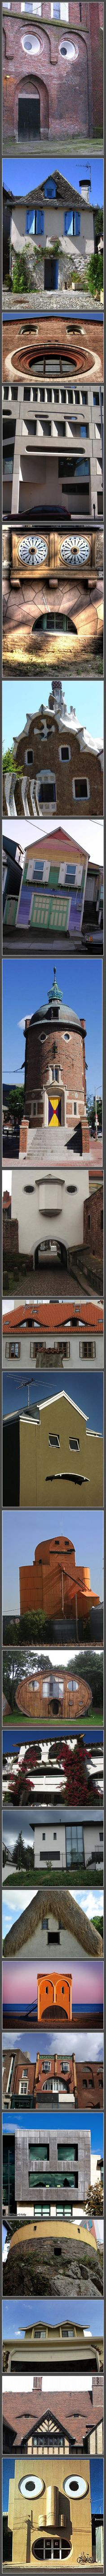 "#Funny #Architecture on #Pinterest  ""Buildings With Unintentionally Funny Faces"" (Facade Faces)"